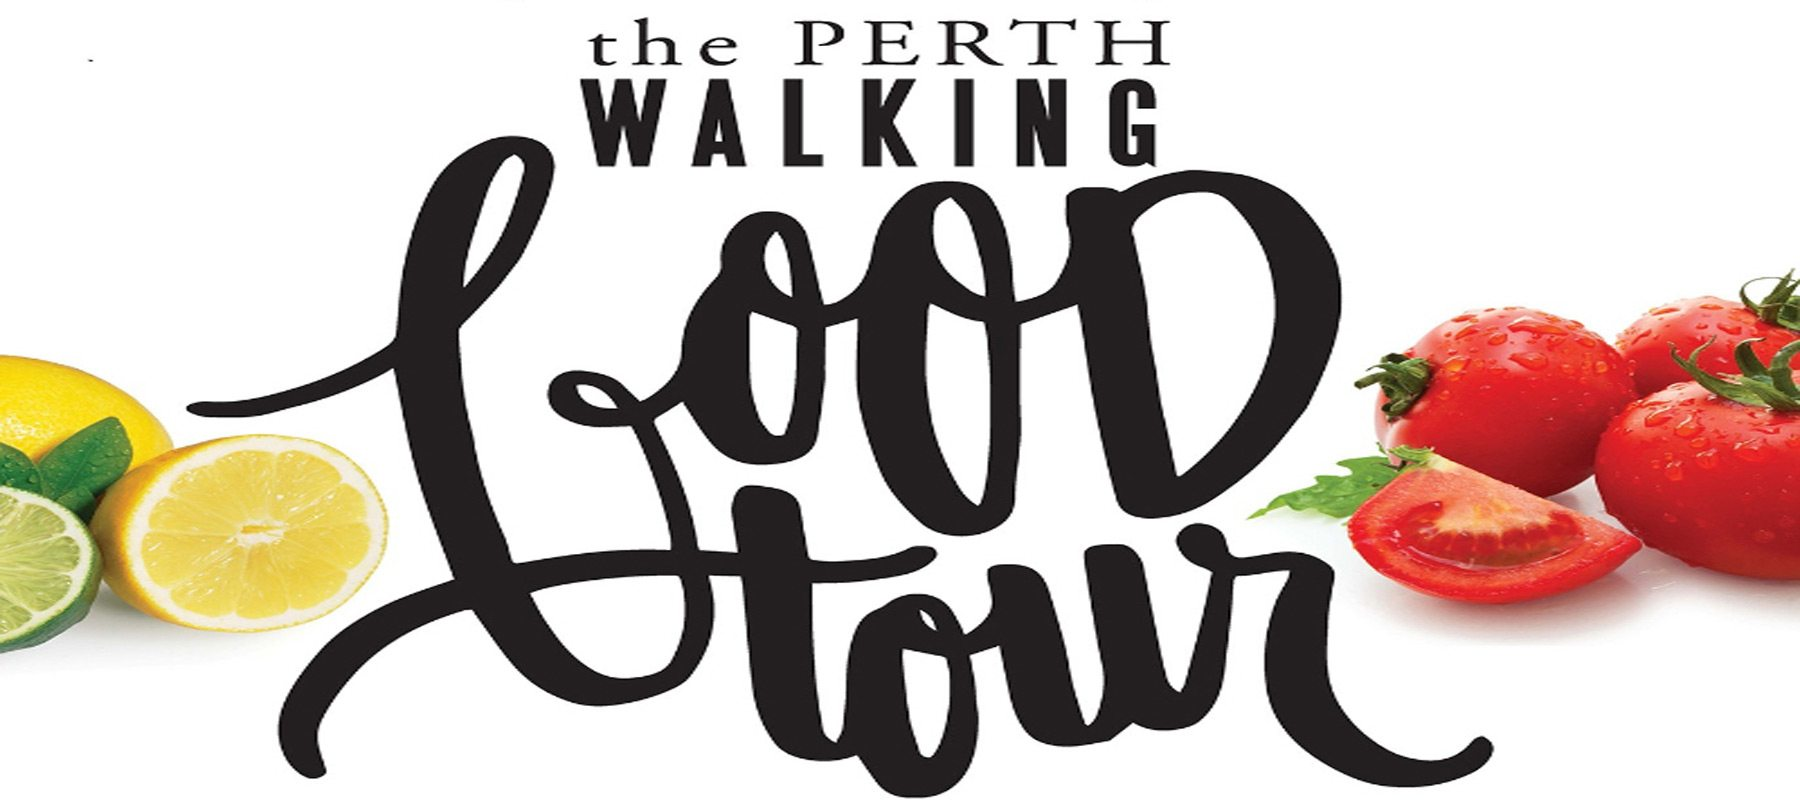 City Bites Hot Tip: Whet your appetite! Perth's summertime Walking Food Tour launches Saturday, May 14